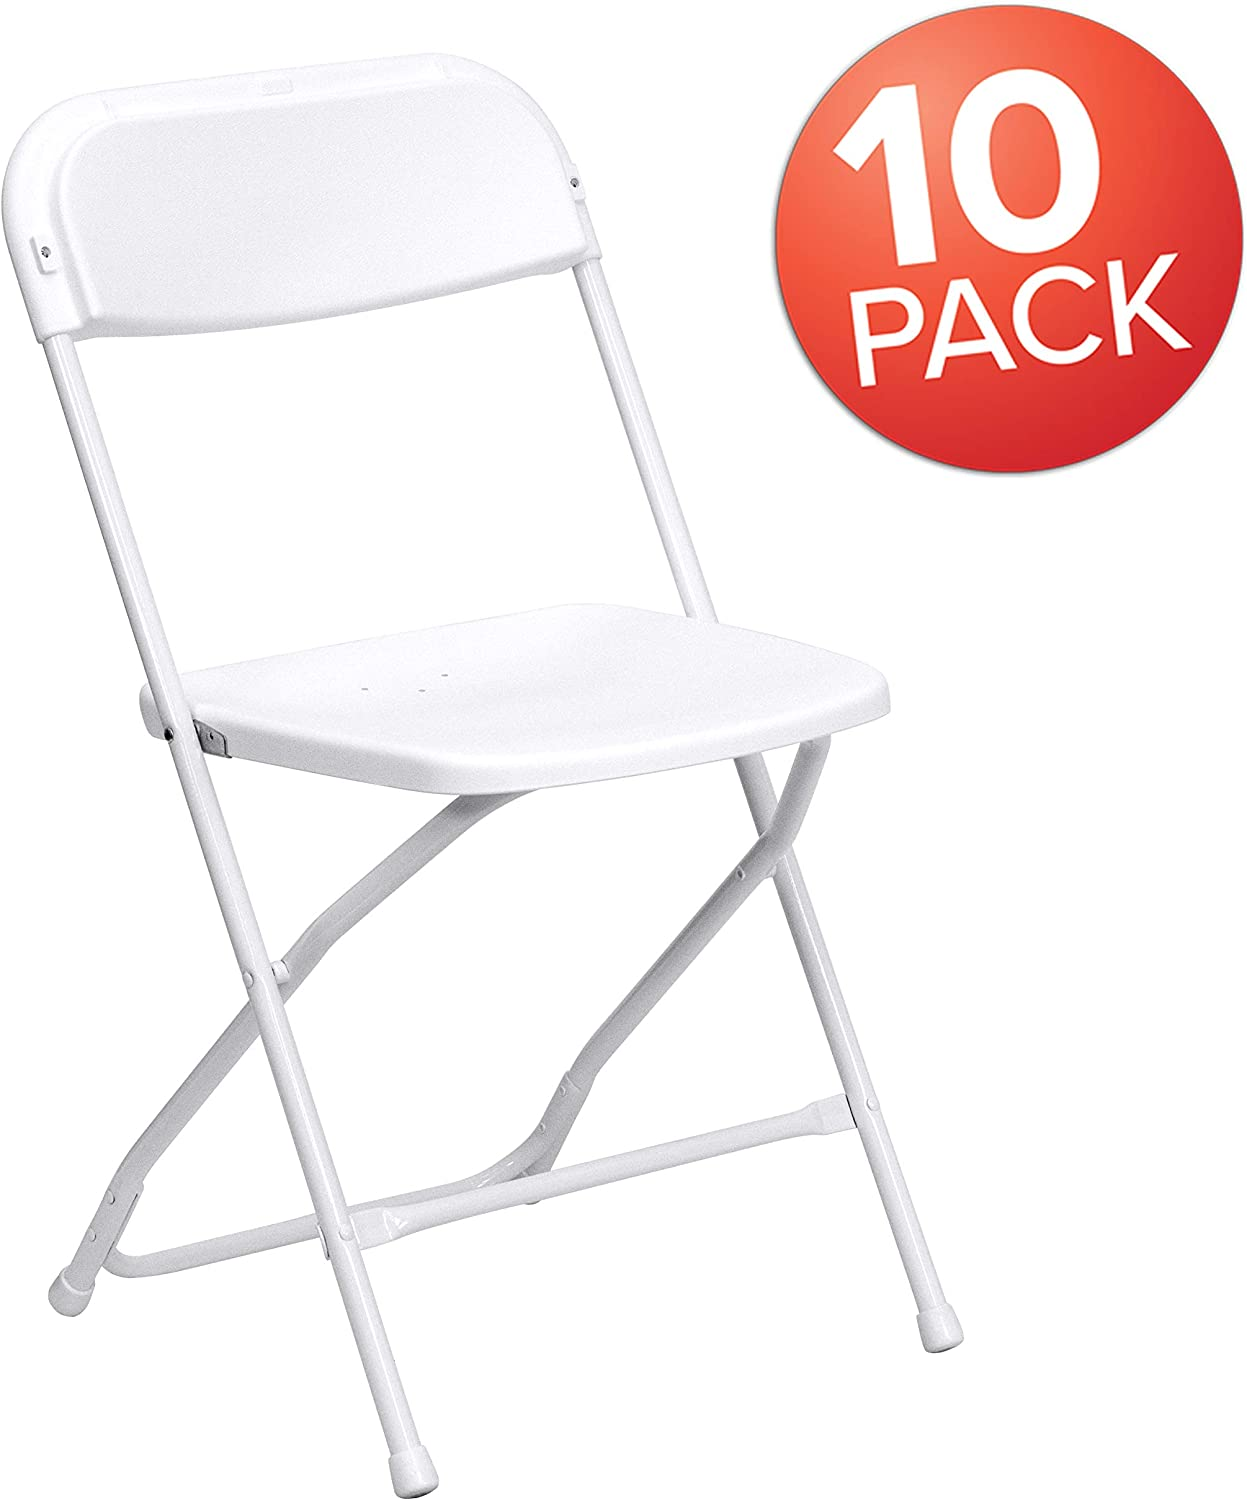 Flash Furniture HERCULES Series 650 lbs capacity Premium Plastic Folding Chair - White (10 Pack): Furniture & Decor